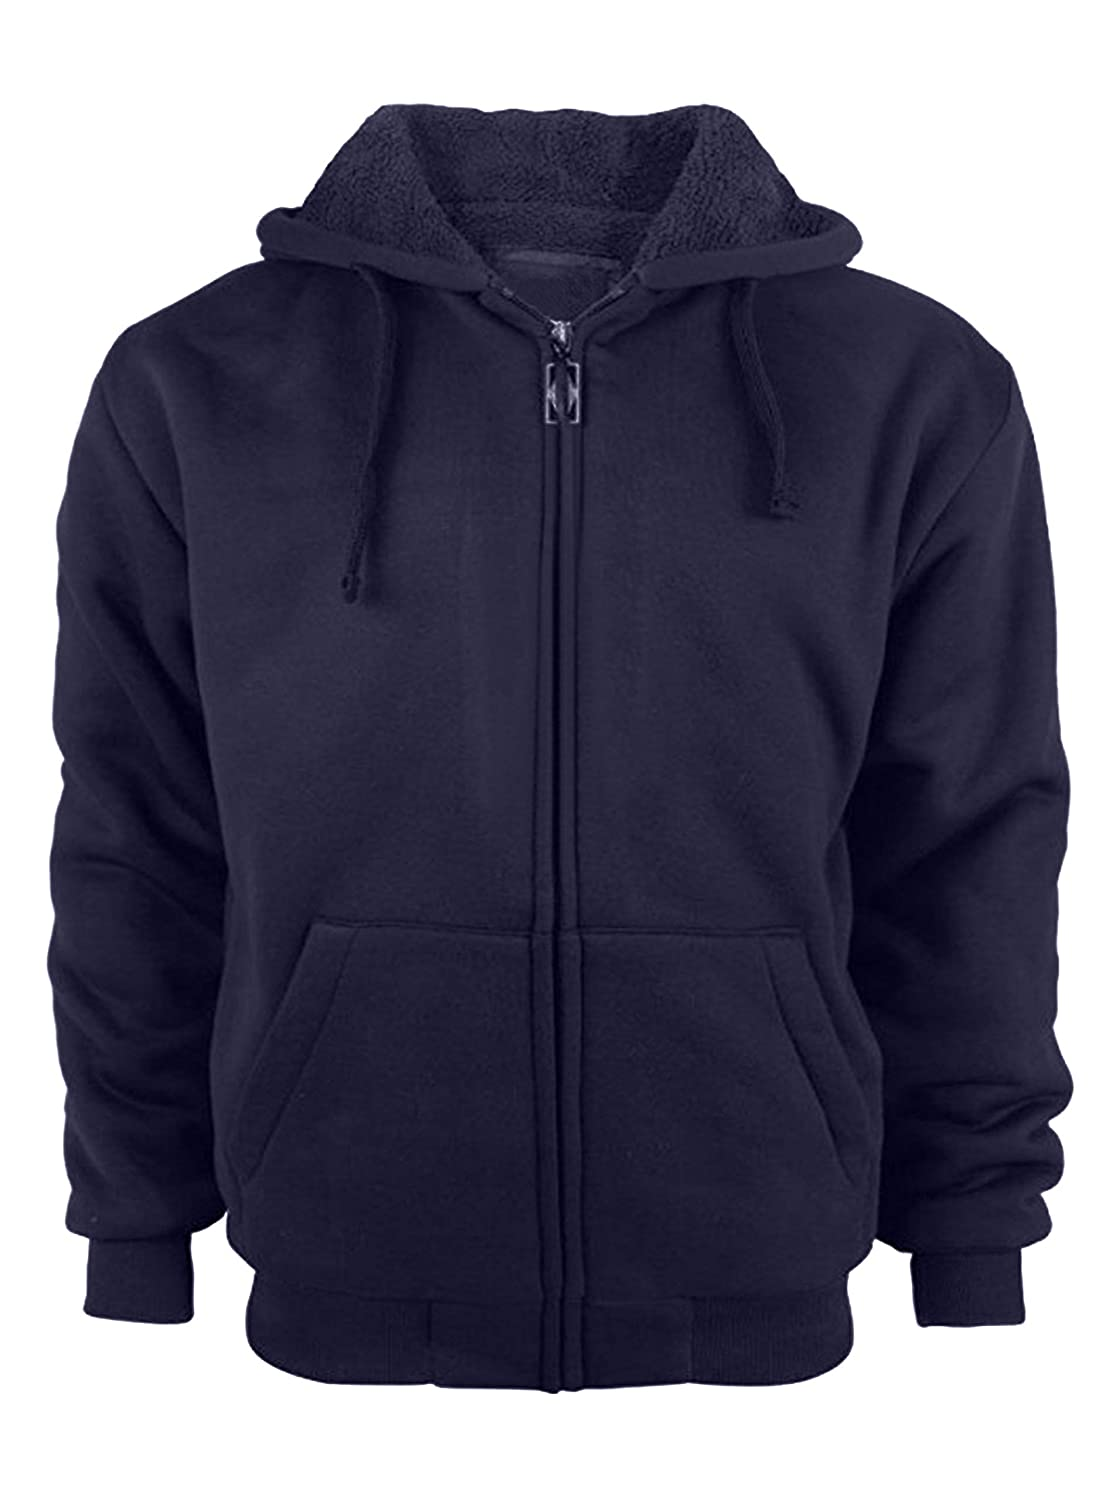 GEEK LIGHTING Mens Performance Full Zip Outdoor Warm Fleece Hoodie Jacket